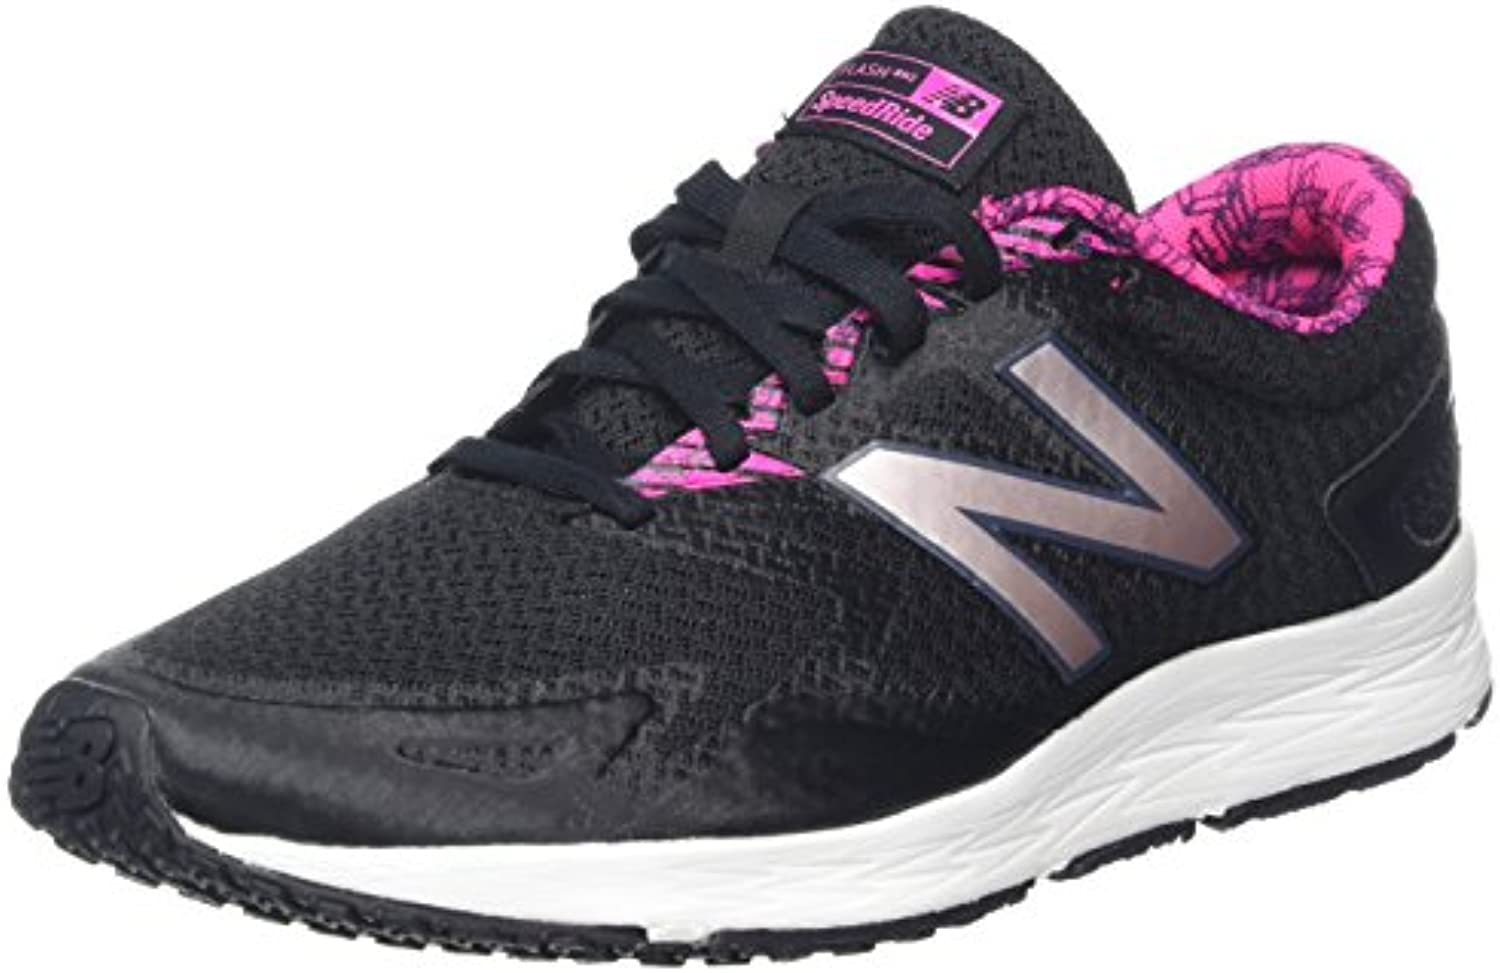 New Balance Flash V2, Scarpe Running Donna | Materiali Di Alta Qualità